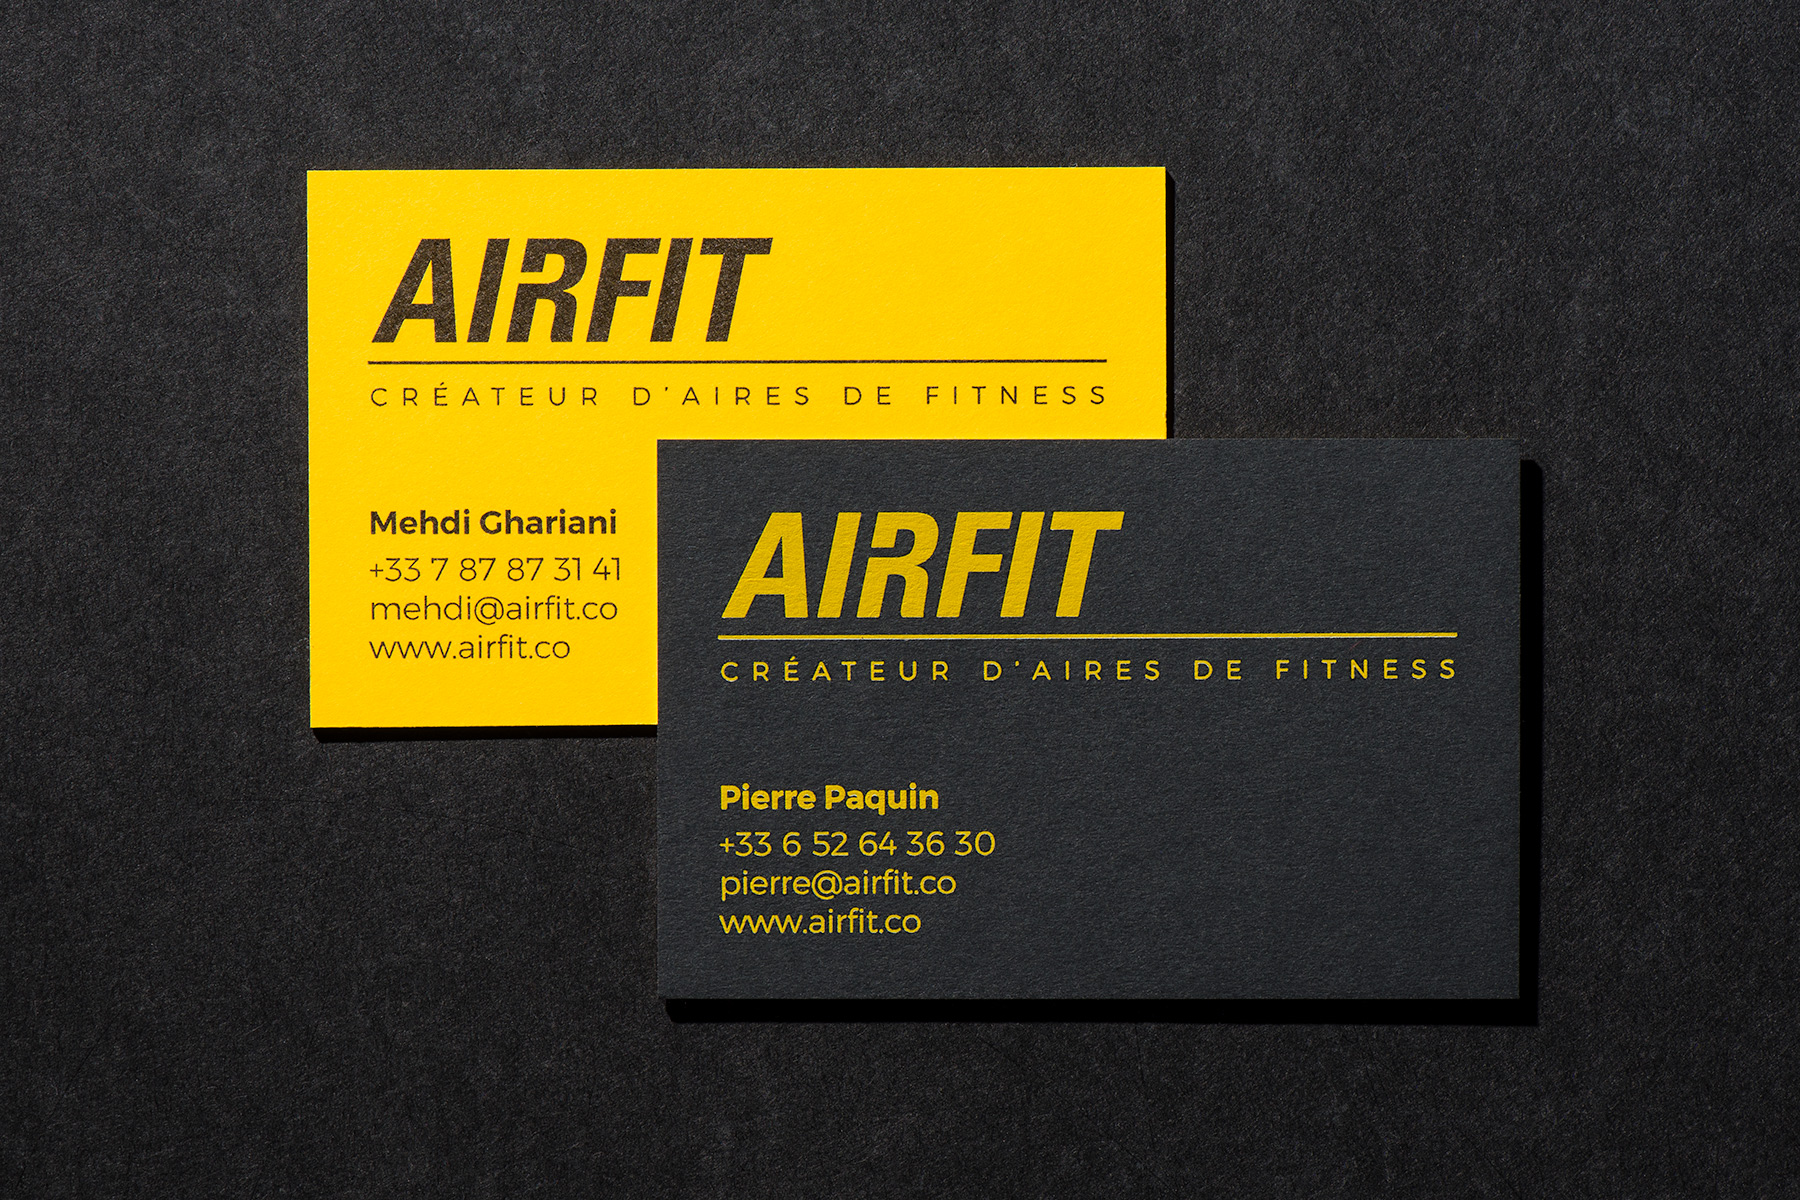 BarinovDesign_AirFit_BrandIdentity_BusinessCards.jpg